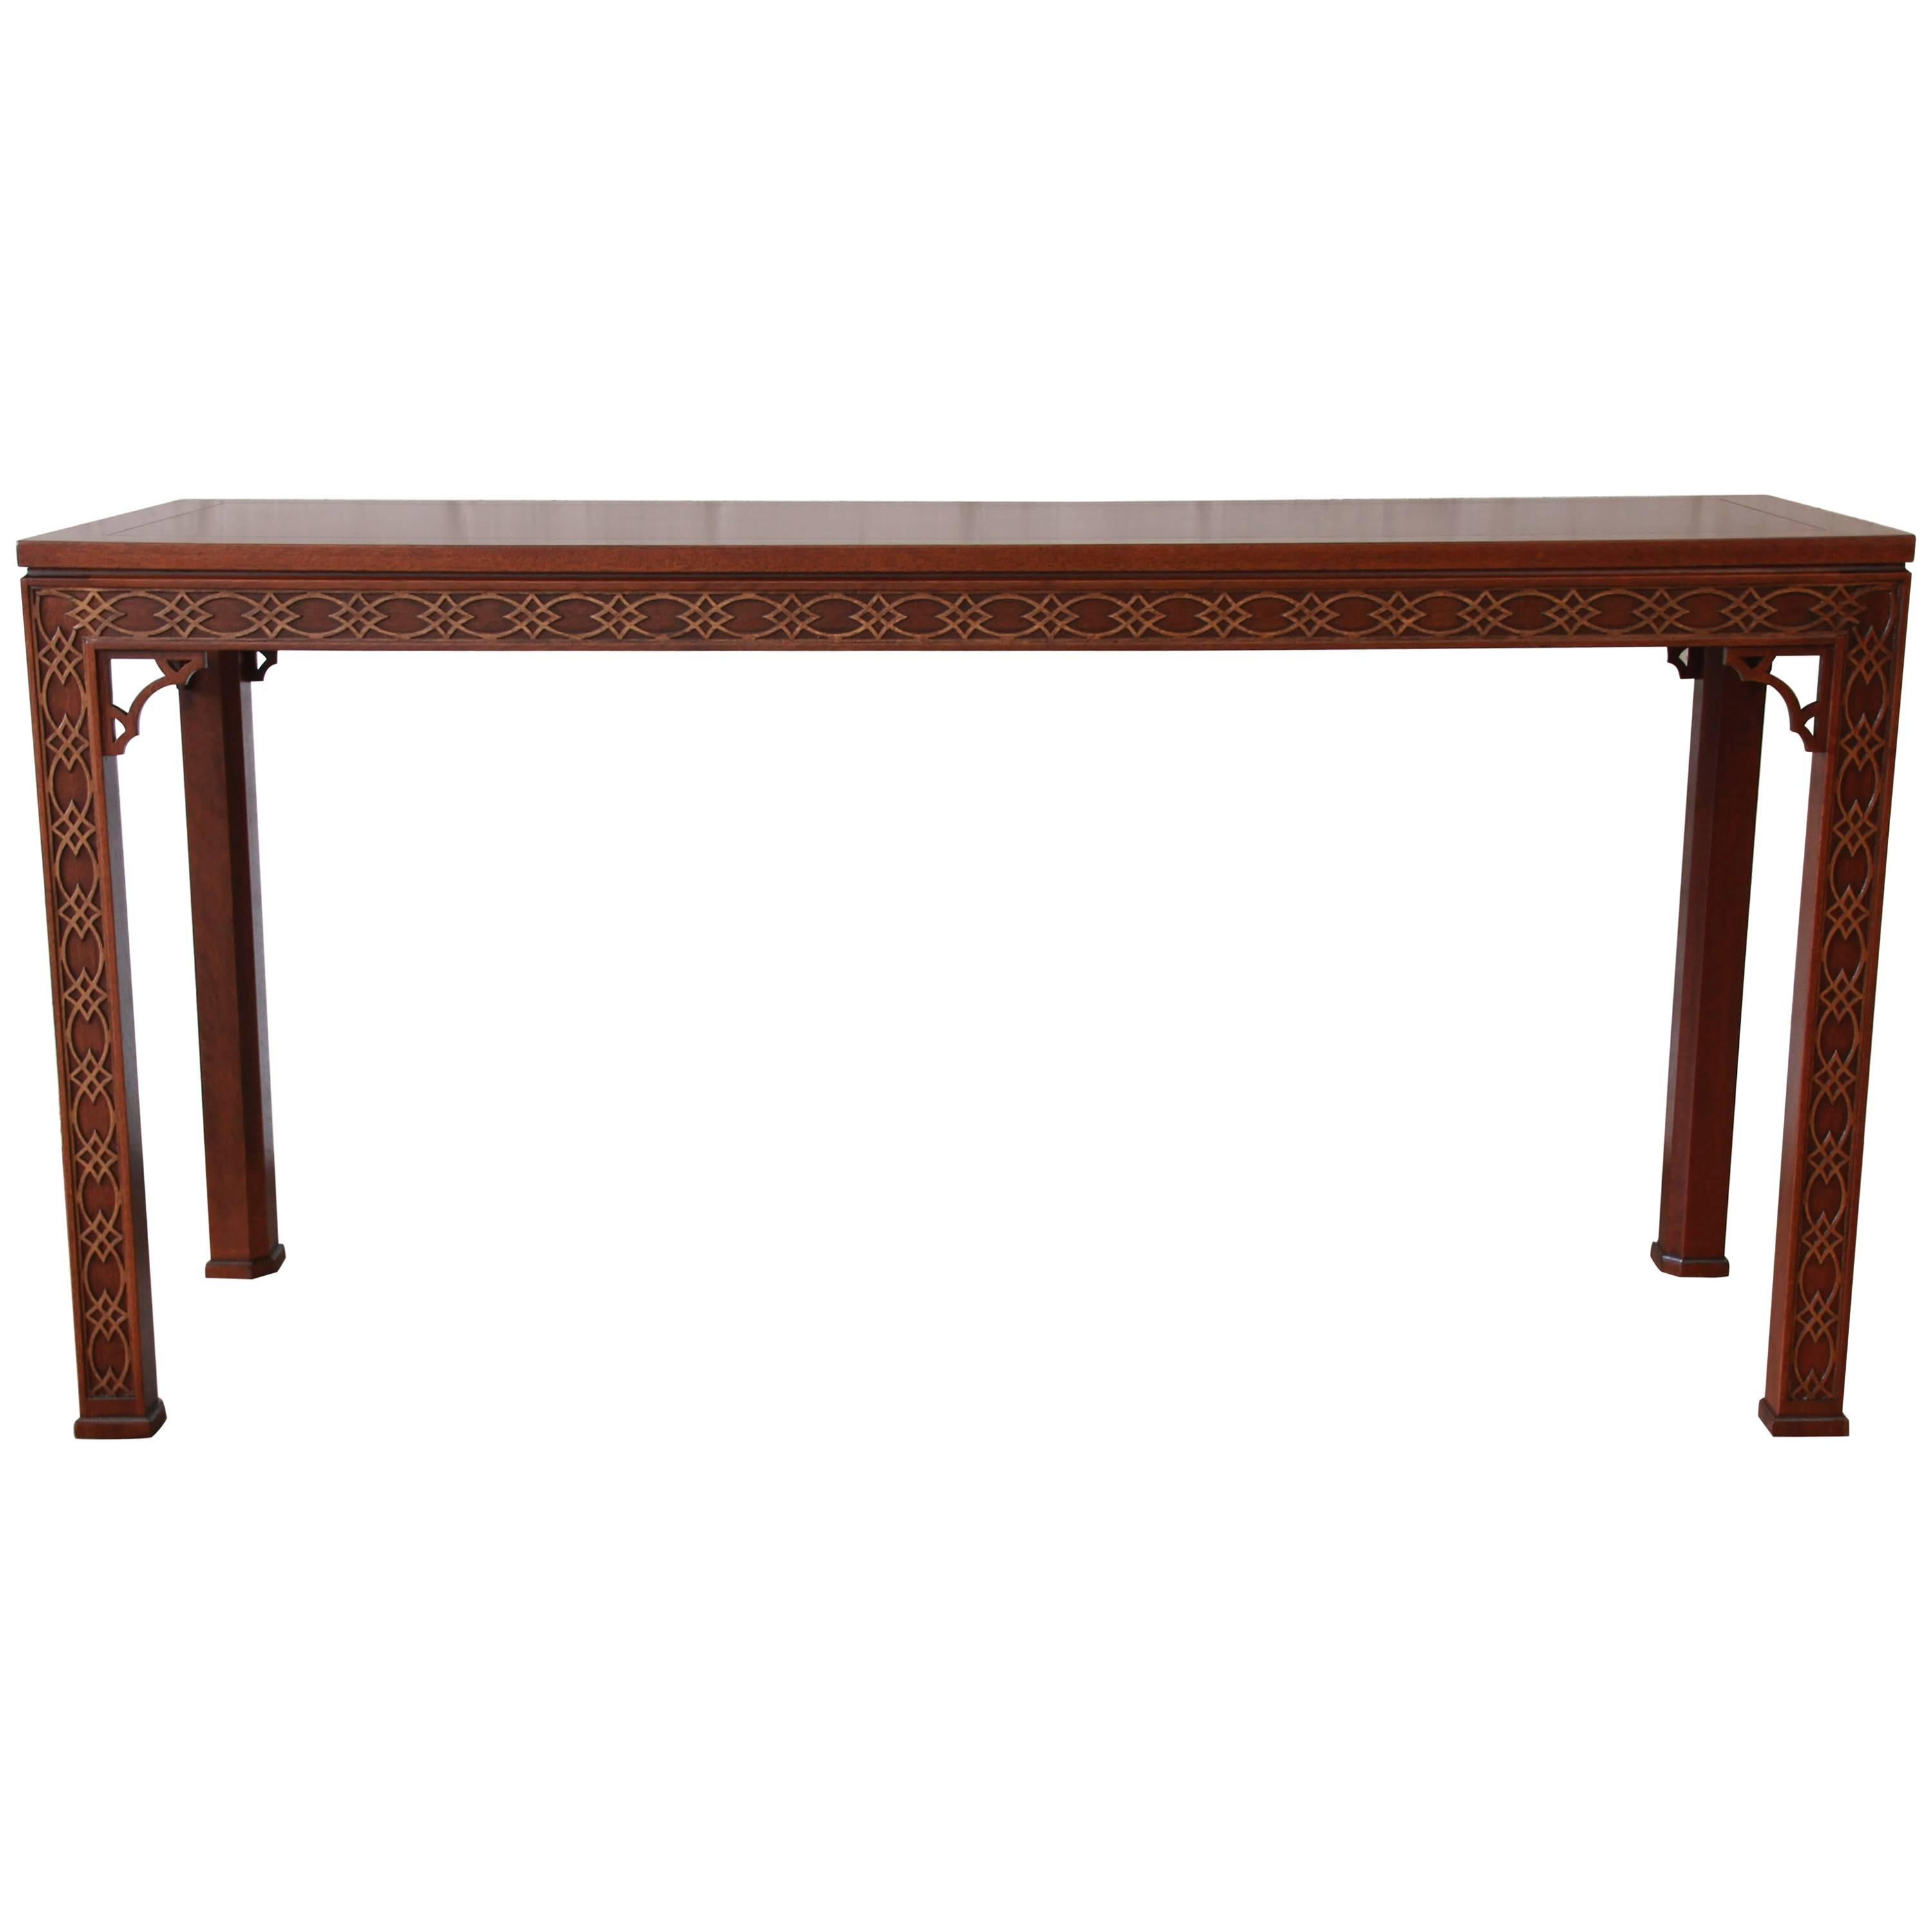 Delightful Fine Carved Mahogany Chinese Chippendale Hall Table By Kindel